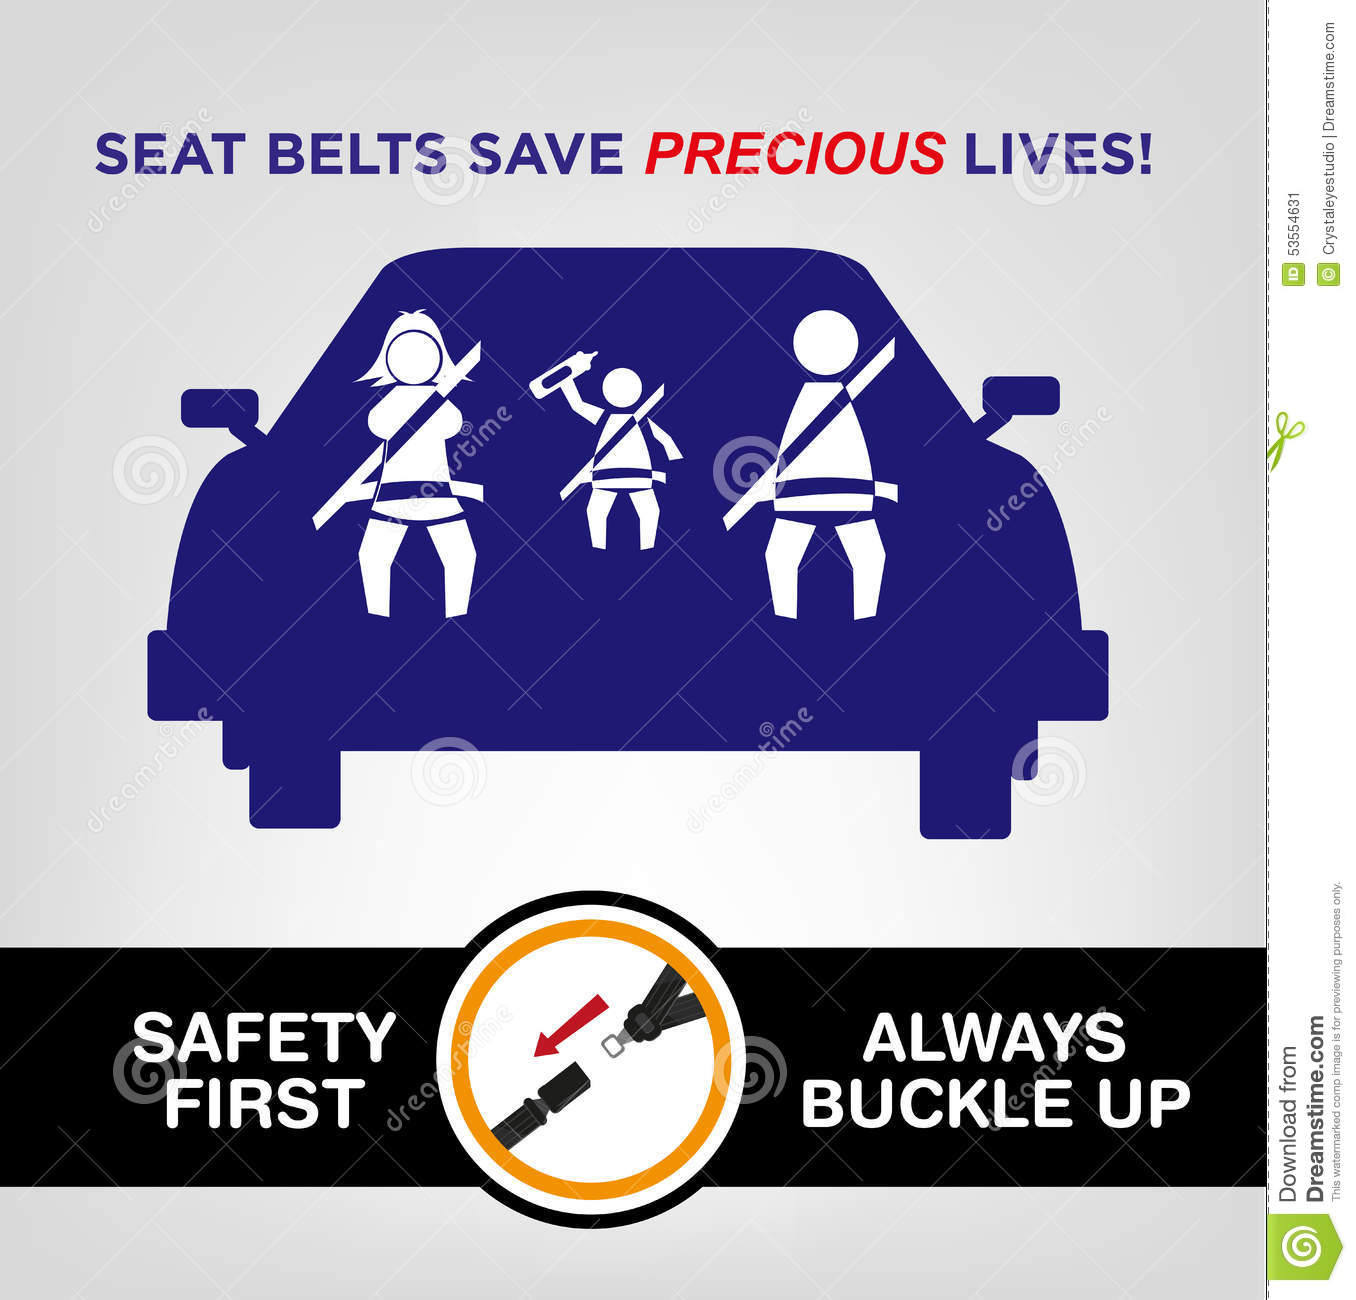 ... While On The Car. Road Safety Concept Stock Vector - Image: 53554631